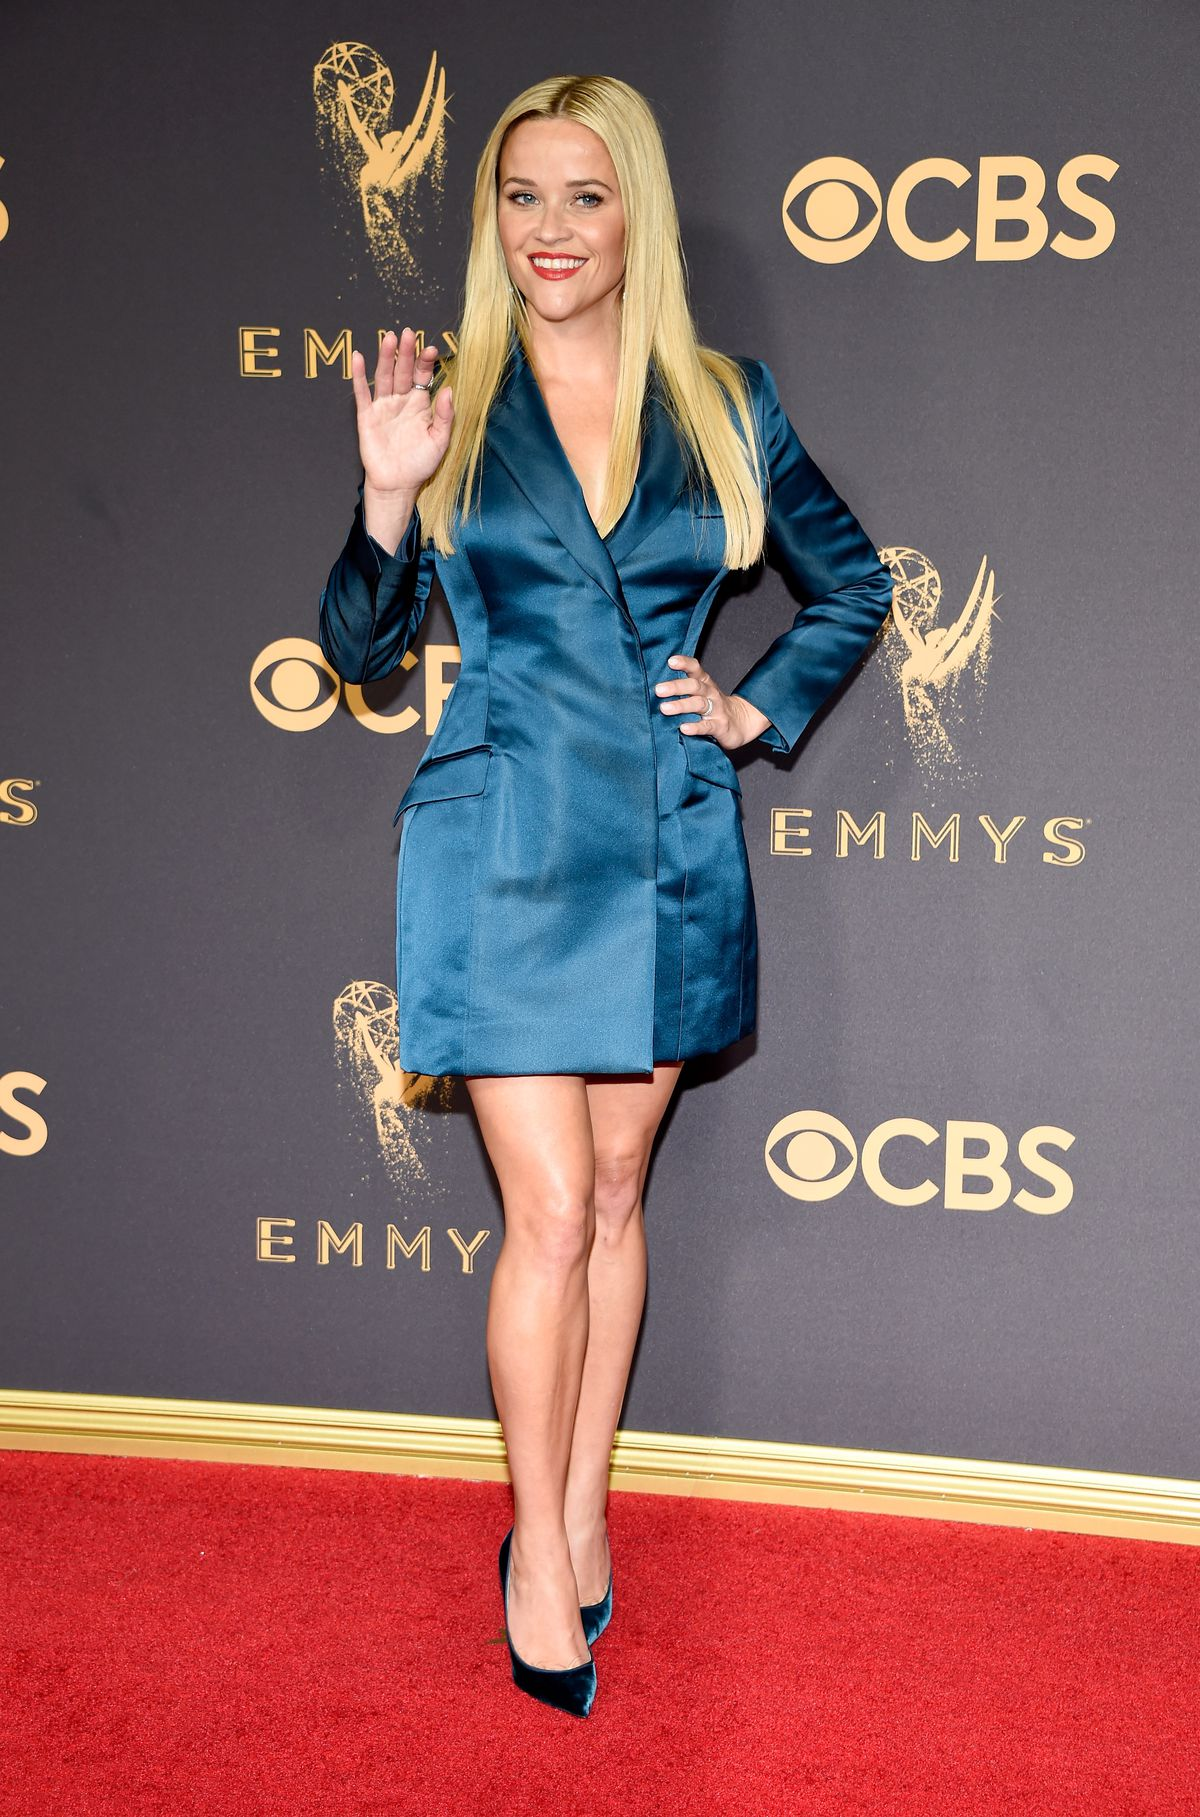 Reese Witherspoon at the 2017 Emmys